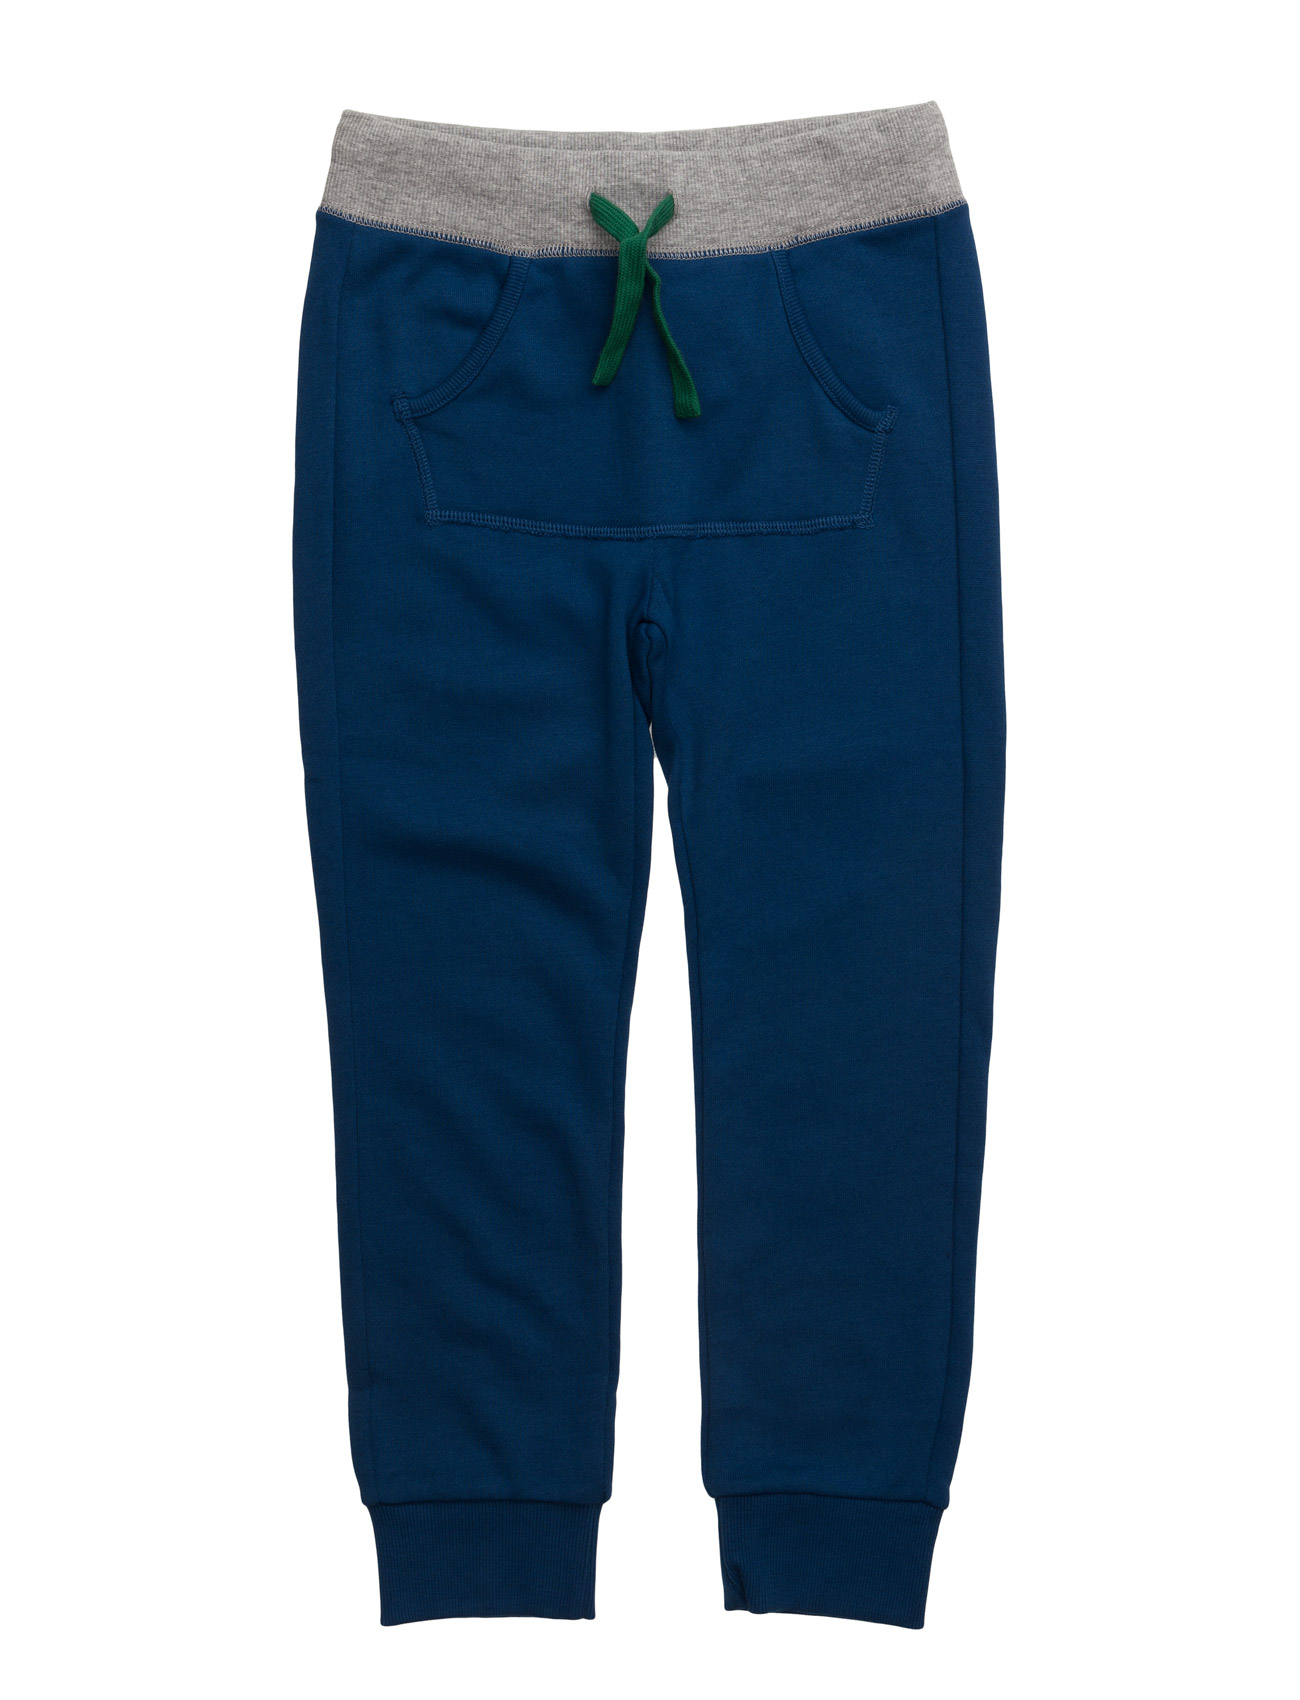 Trousers United Colors of Benetton  til Børn i Navy blå